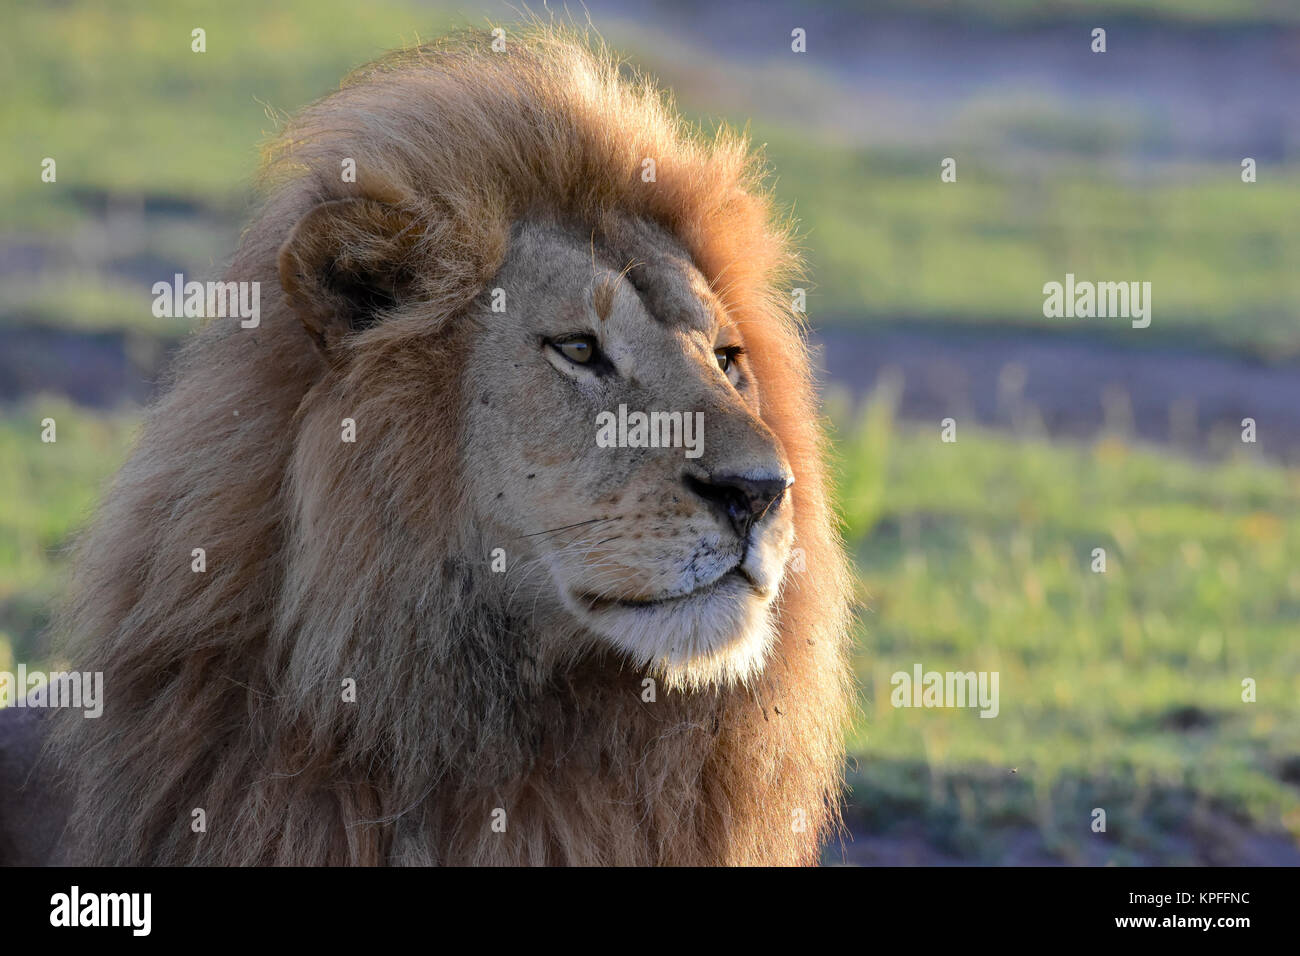 Wildlife sightseeing in one of the prime wildlife destinations on earht -- Serengeti, Tanzania.Staring maned lion. - Stock Image